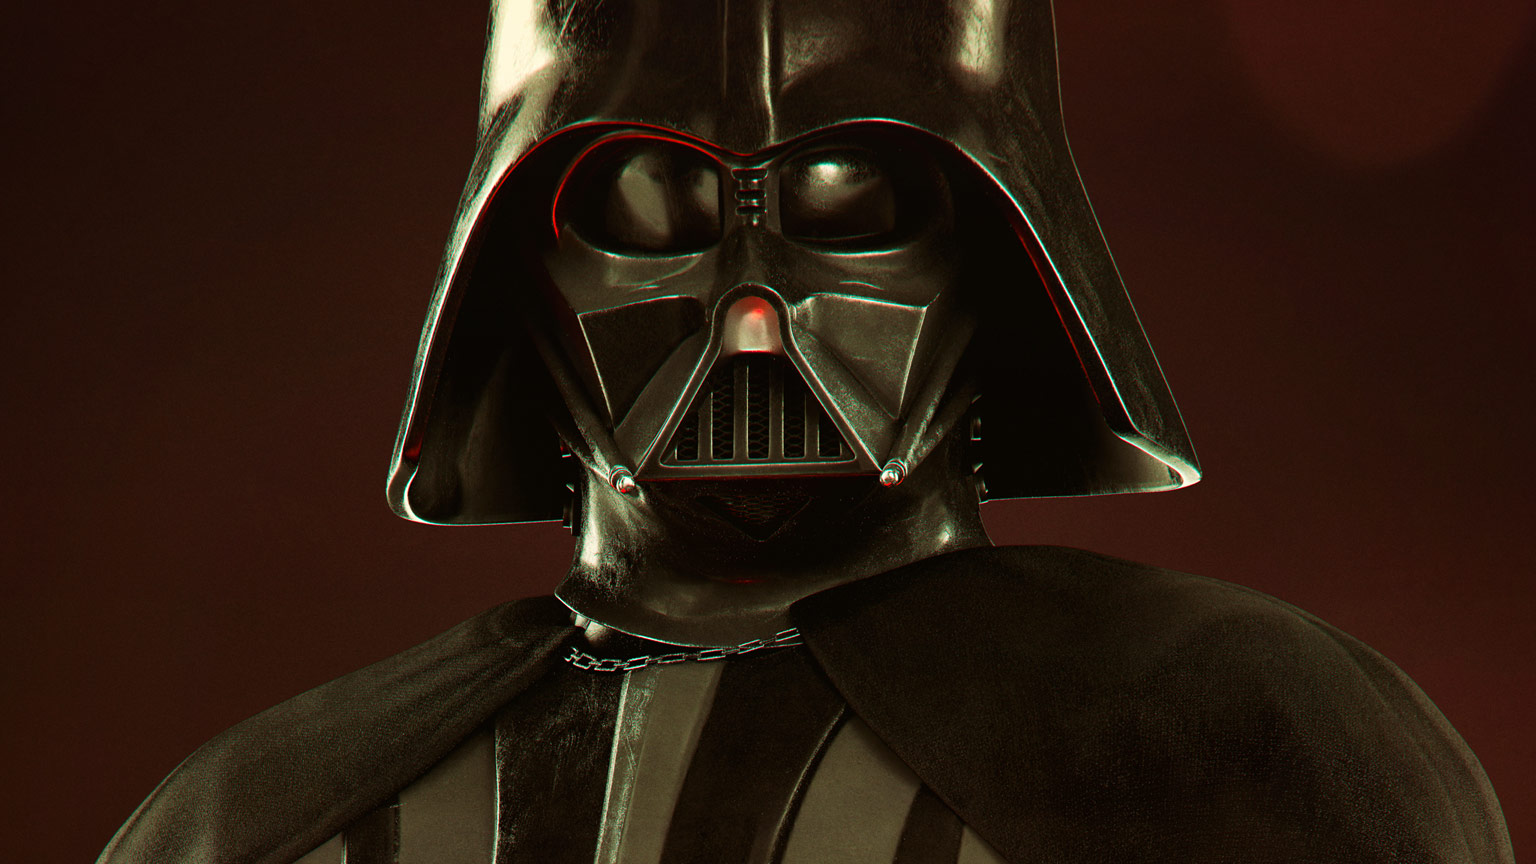 Darth Vader Vader Immortal SDCC poster